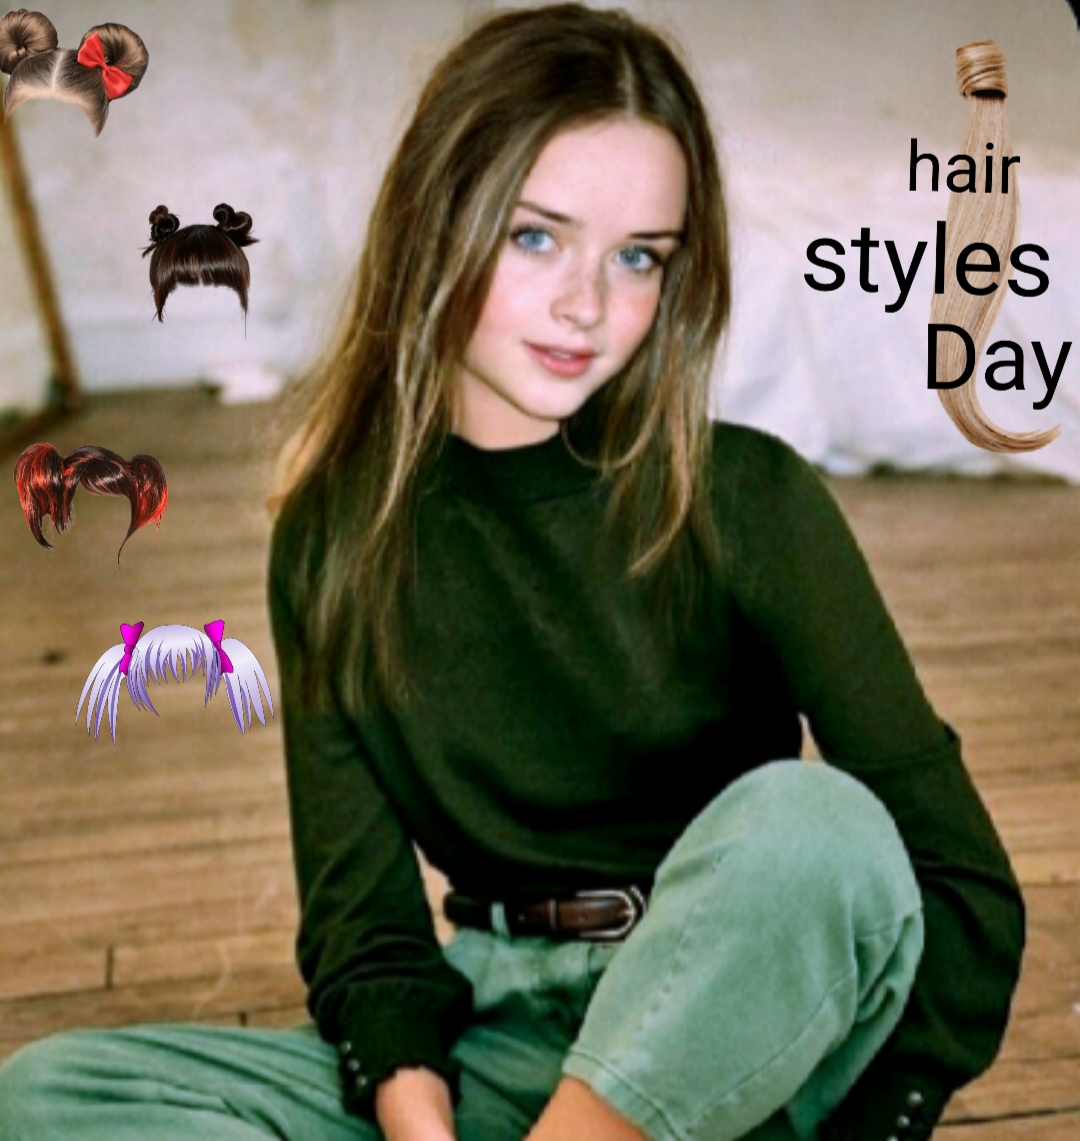 hair styles day and article image